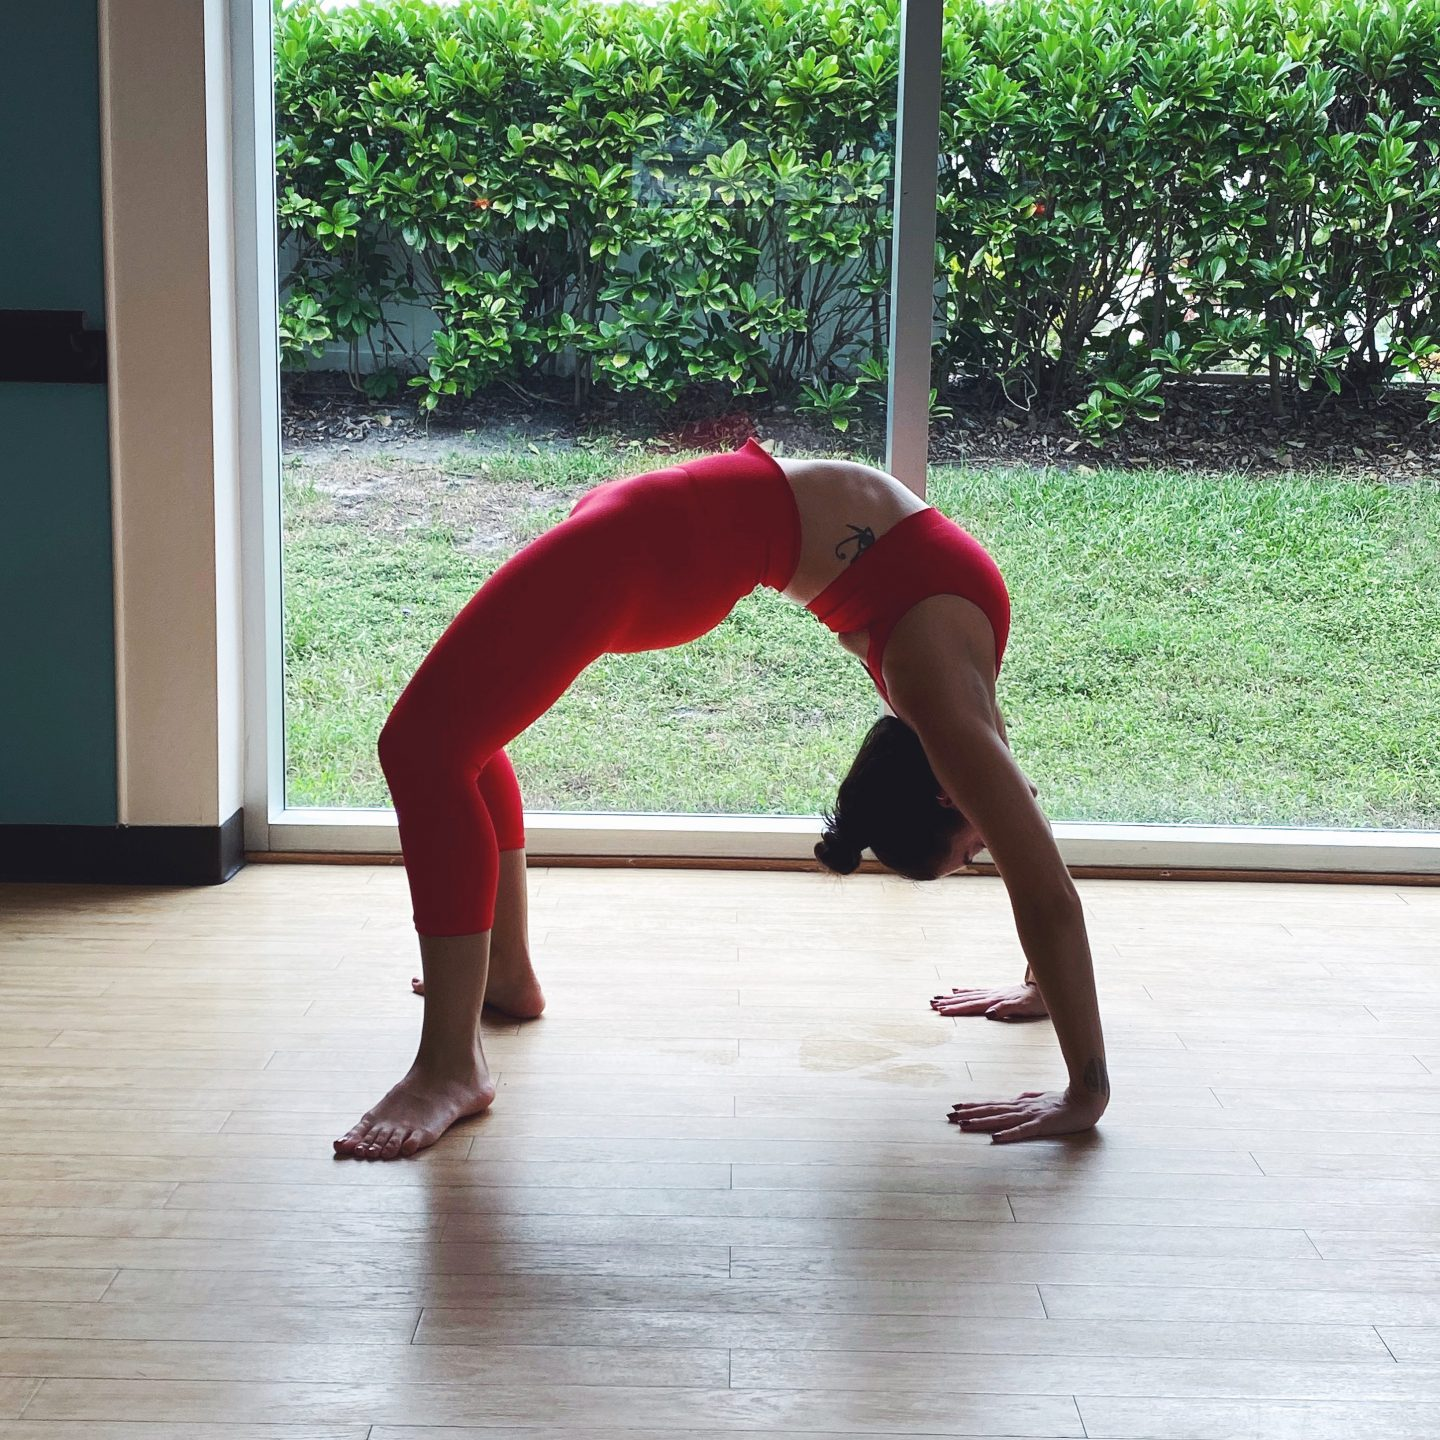 The Bellezza Corner My Experience Becoming an RYT 200 Hour Yoga Instructor